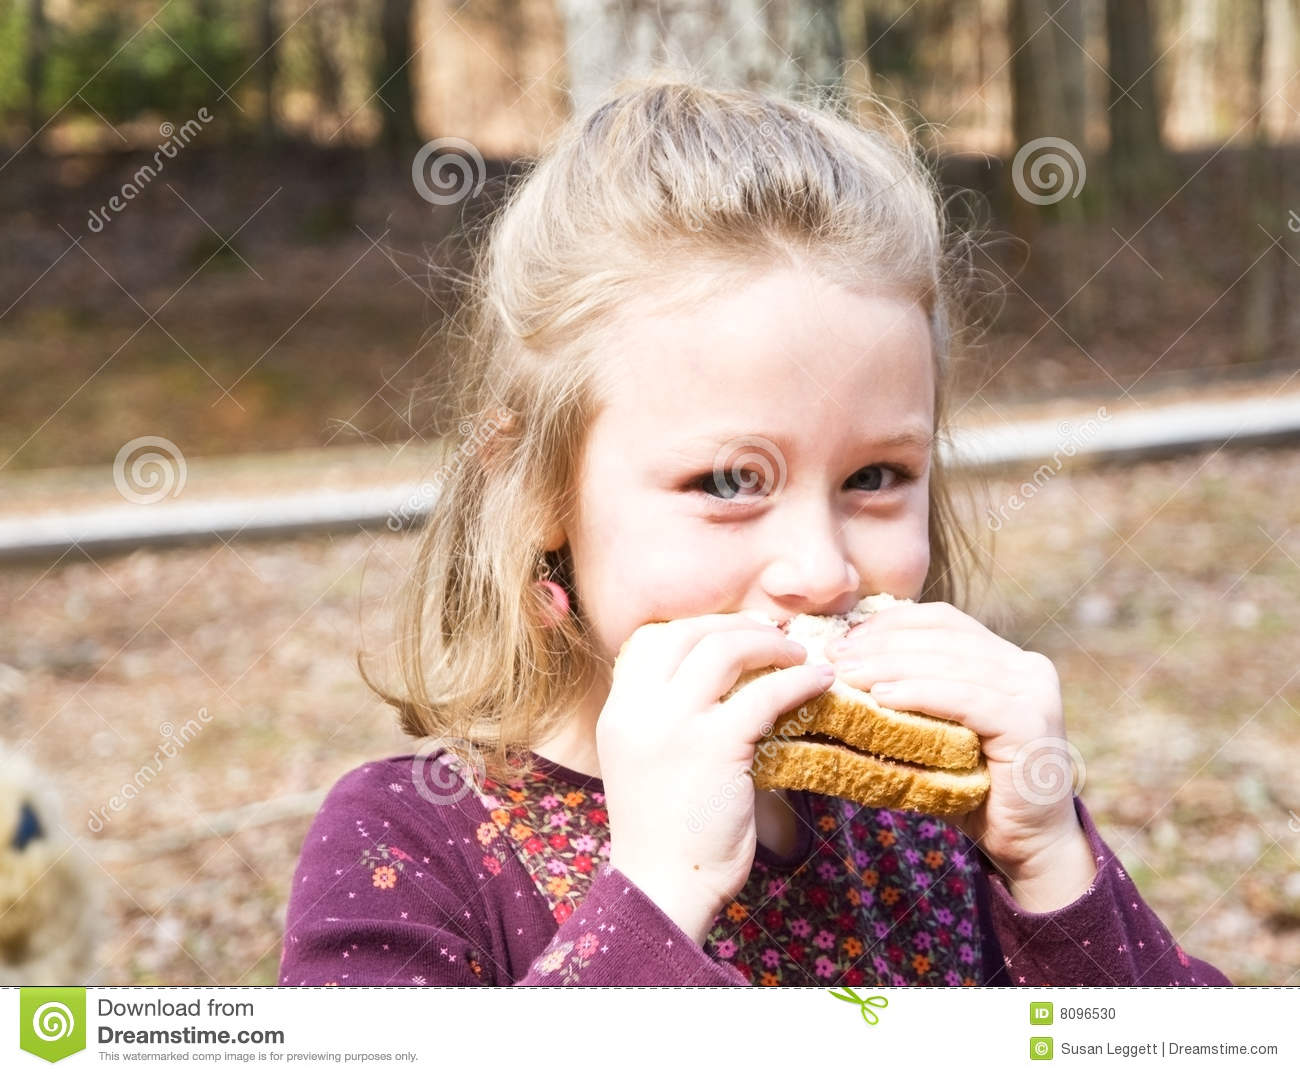 Young Girl on a Picnic